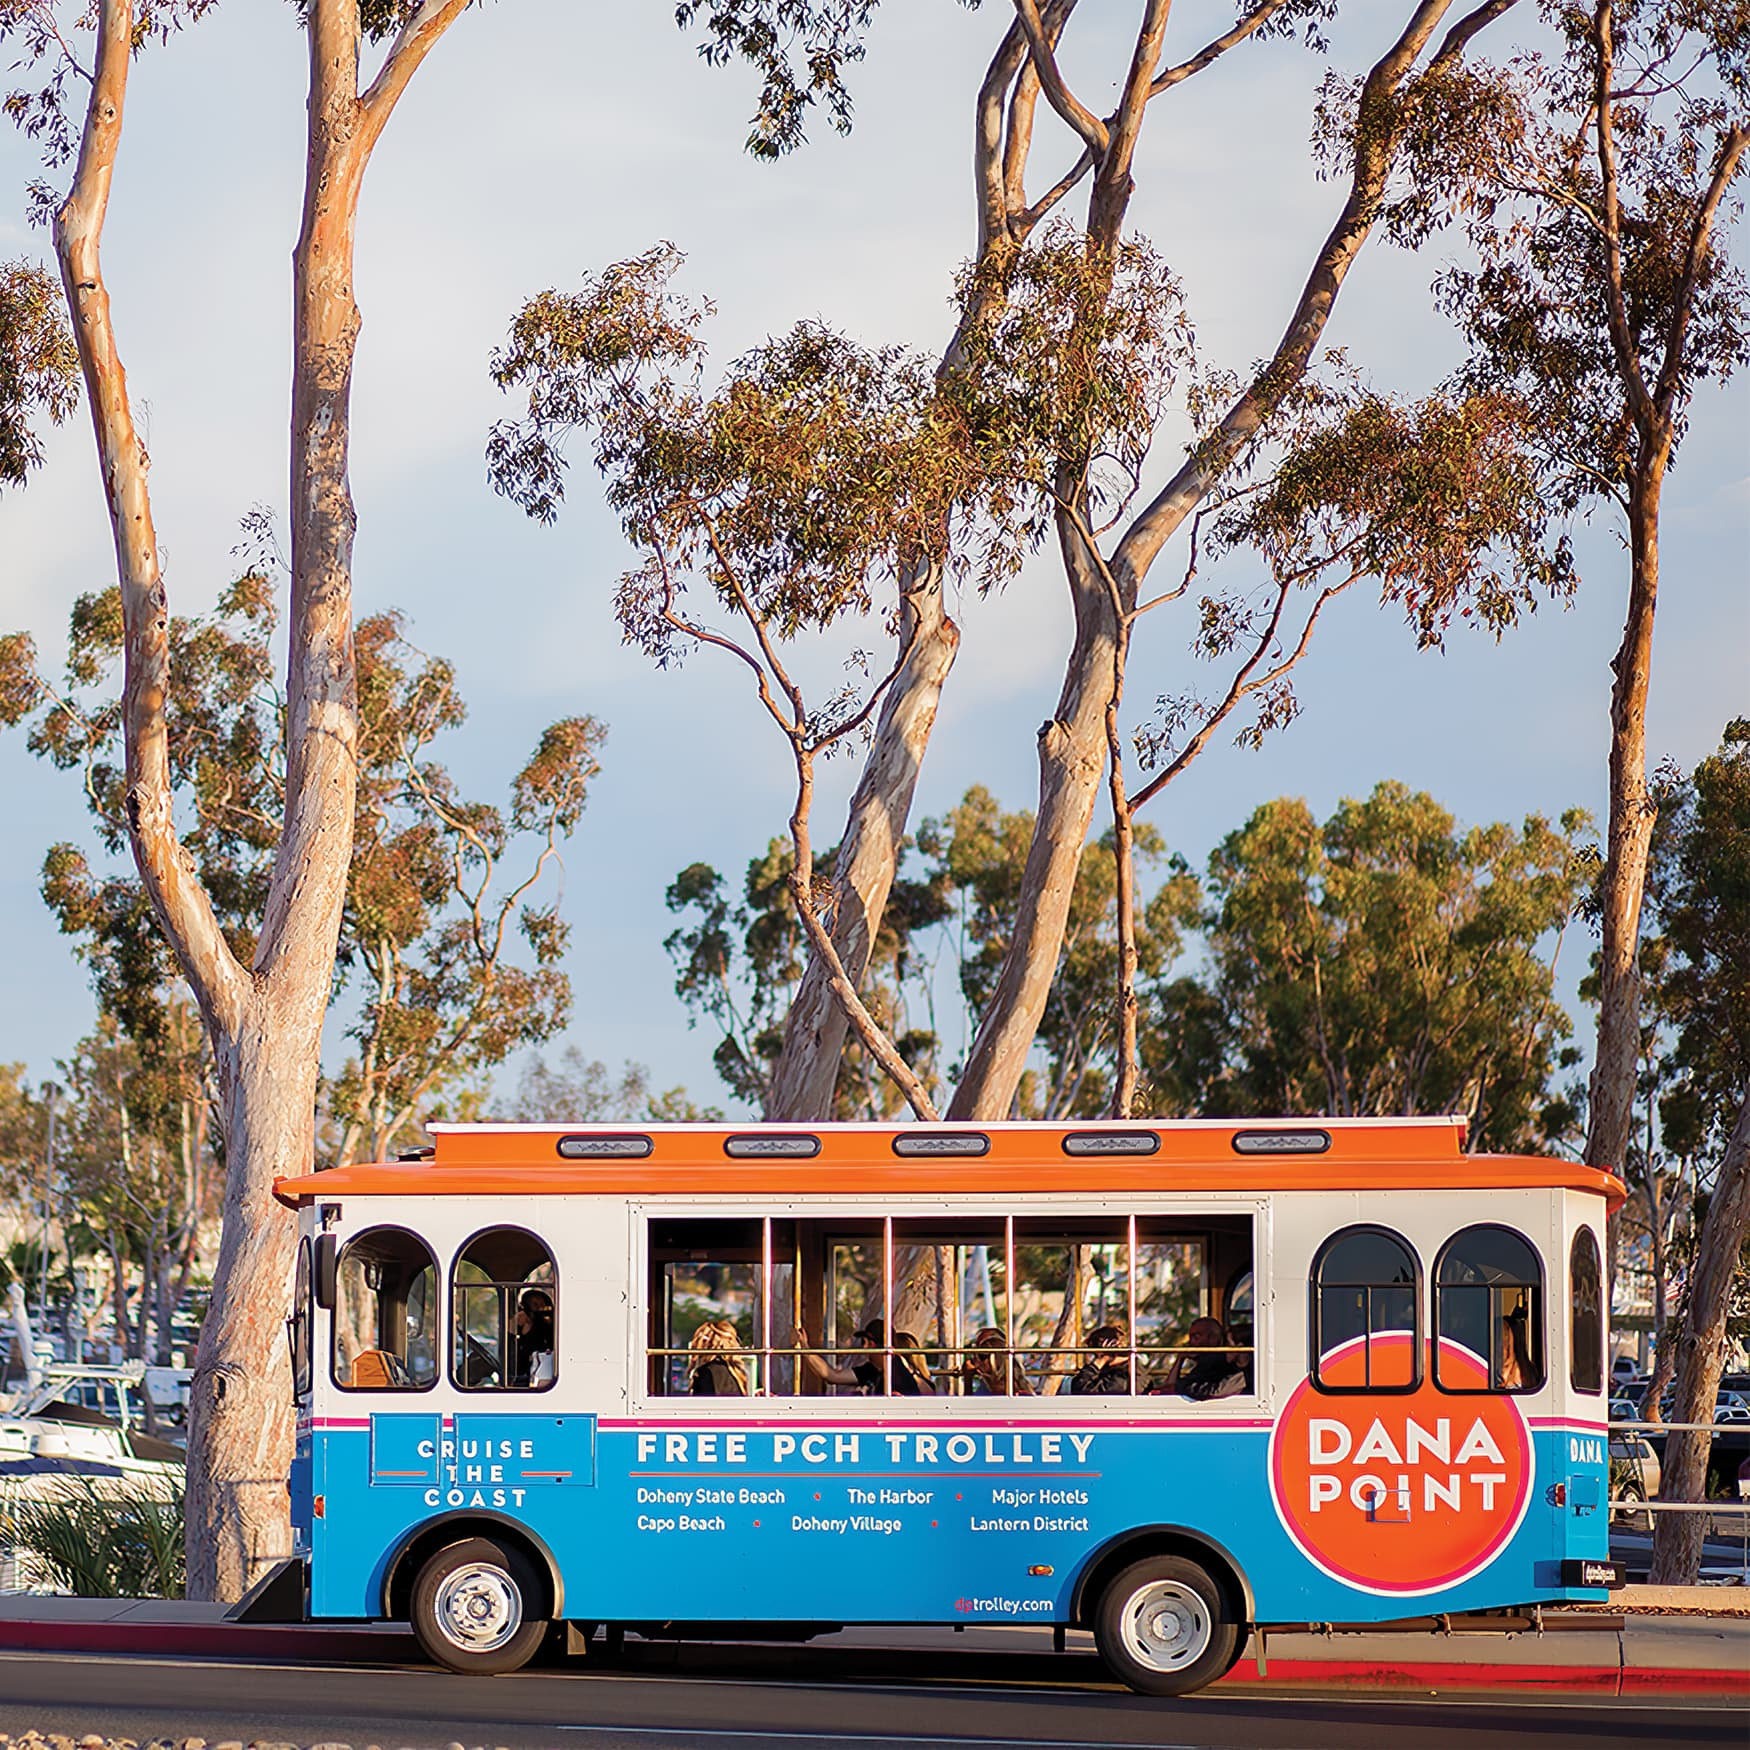 City of Dana Point trolley with decal graphics designed by RSM Design